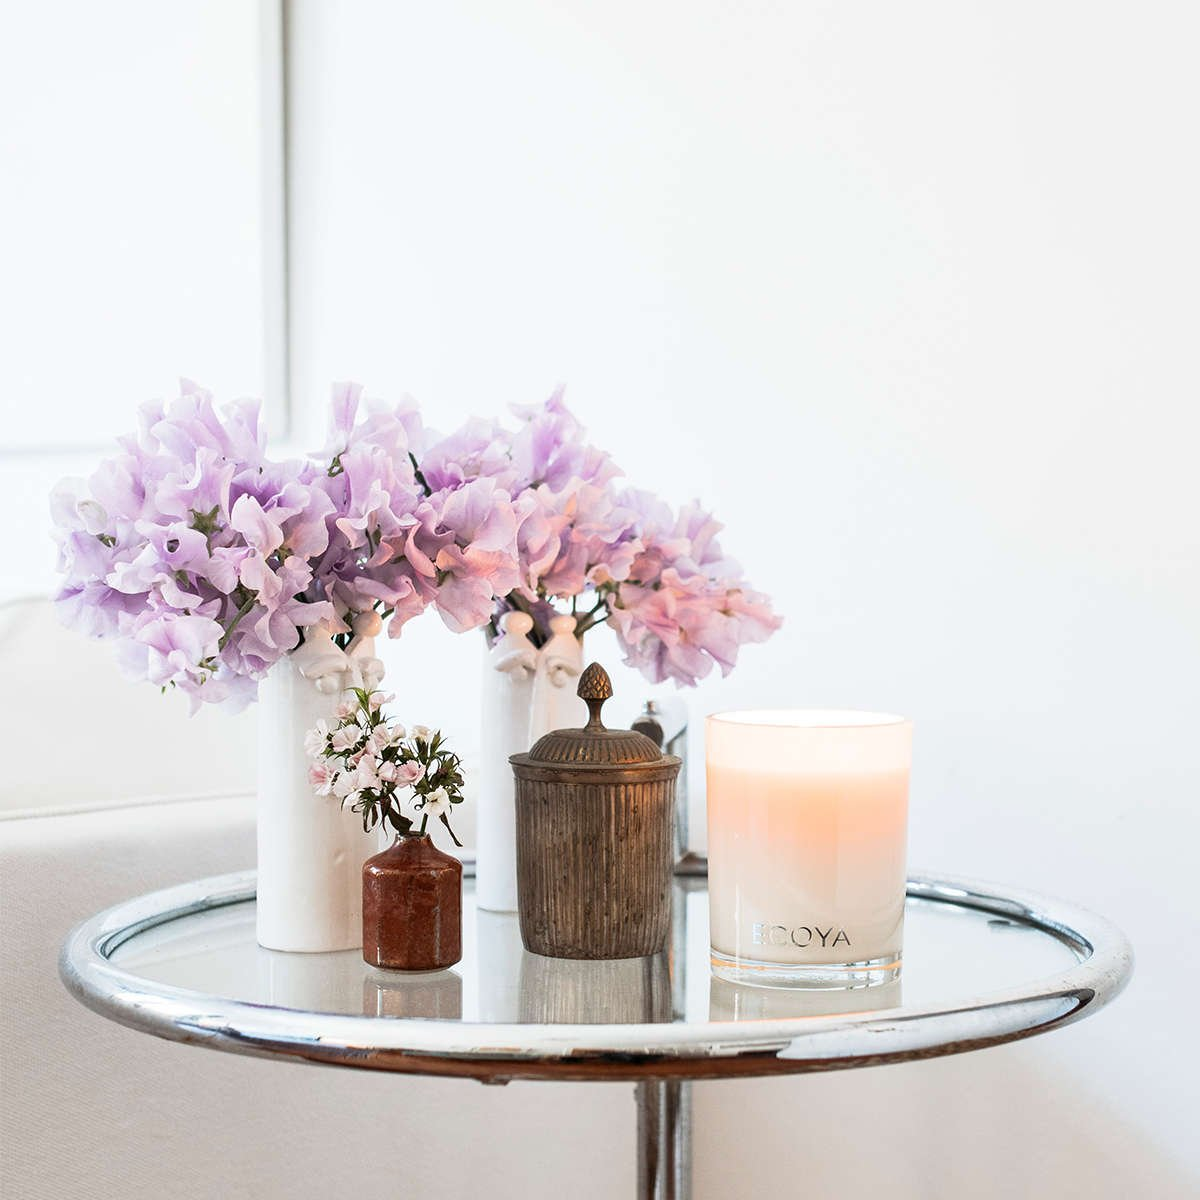 flowers and ECOYA candle